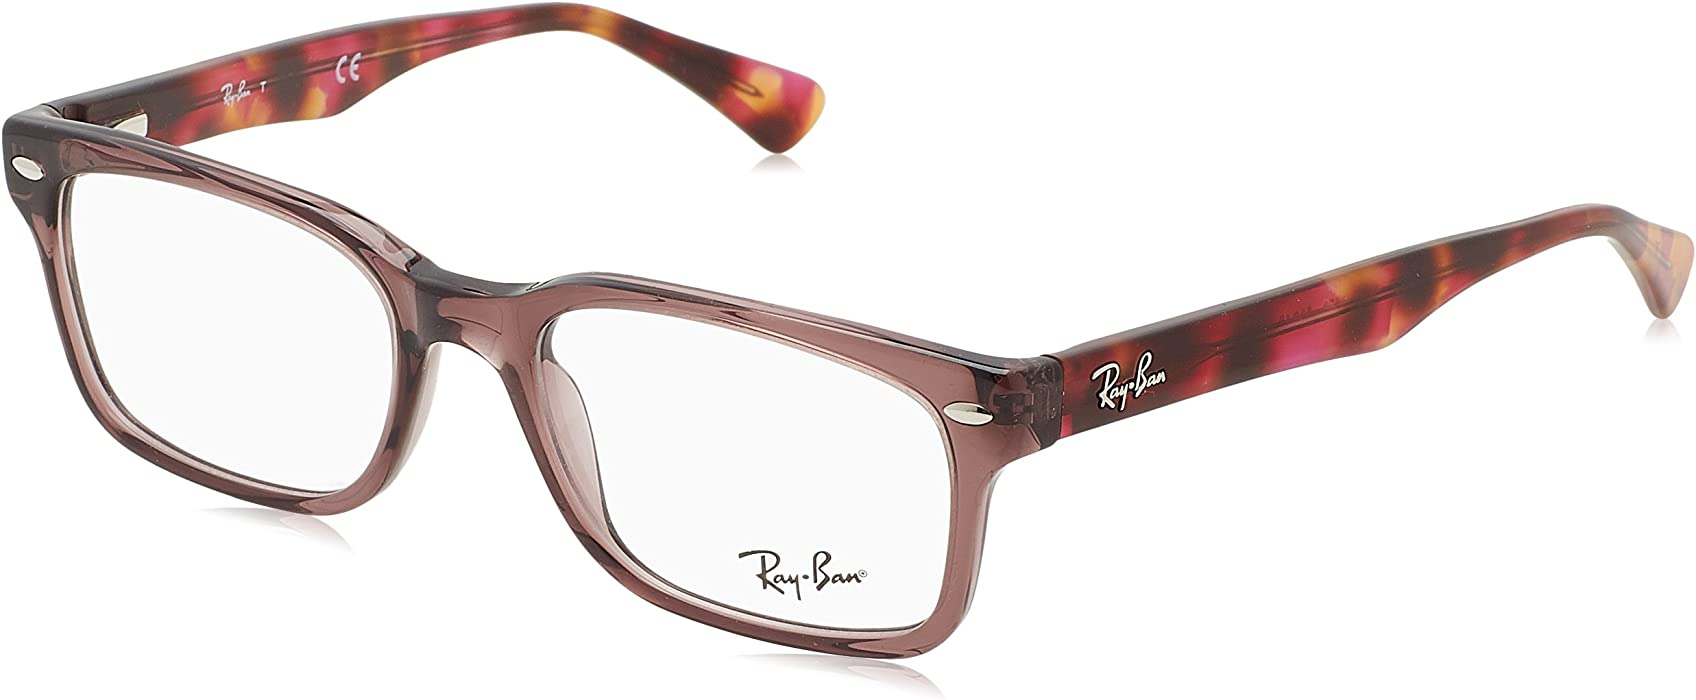 63202ab06a0 Ray-Ban Women s 0rx5286 No Polarization Square Prescription Eyewear Frame  Shiny Opal Brown 51 mm